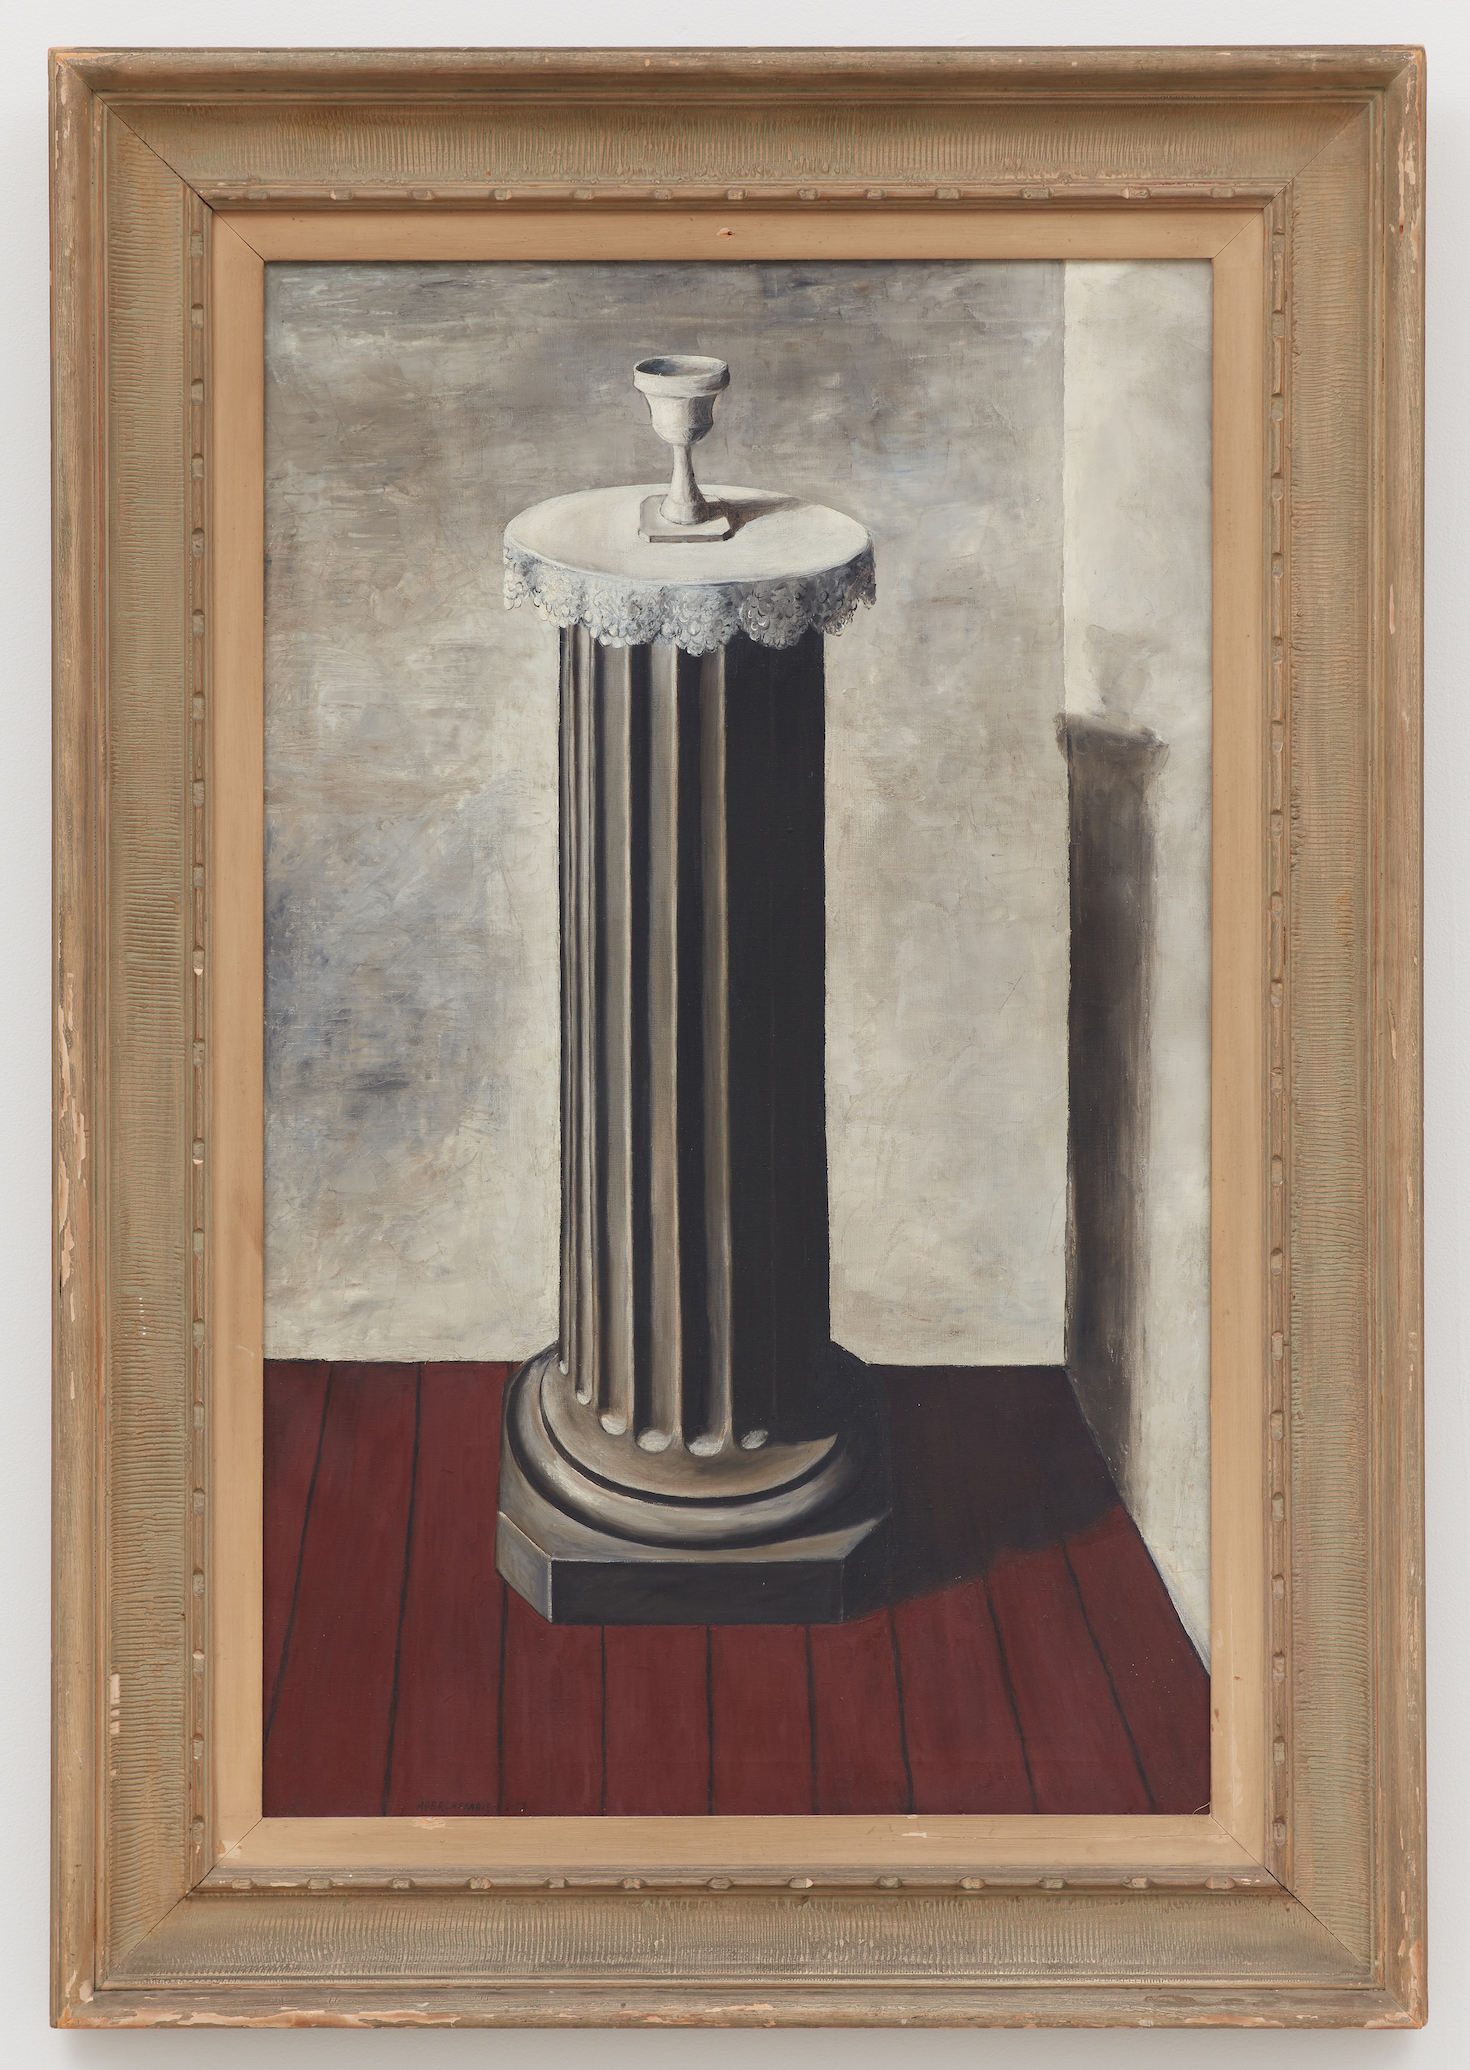 The Pedestal,  1938, Oil on canvas, 36 1/4 × 22 1/4 inches (unframed); 45 × 31 1/4 inches (framed). Illinois State Museum, Illinois Legacy Collection, Gift of the Gertrude Abercrombie Trust.